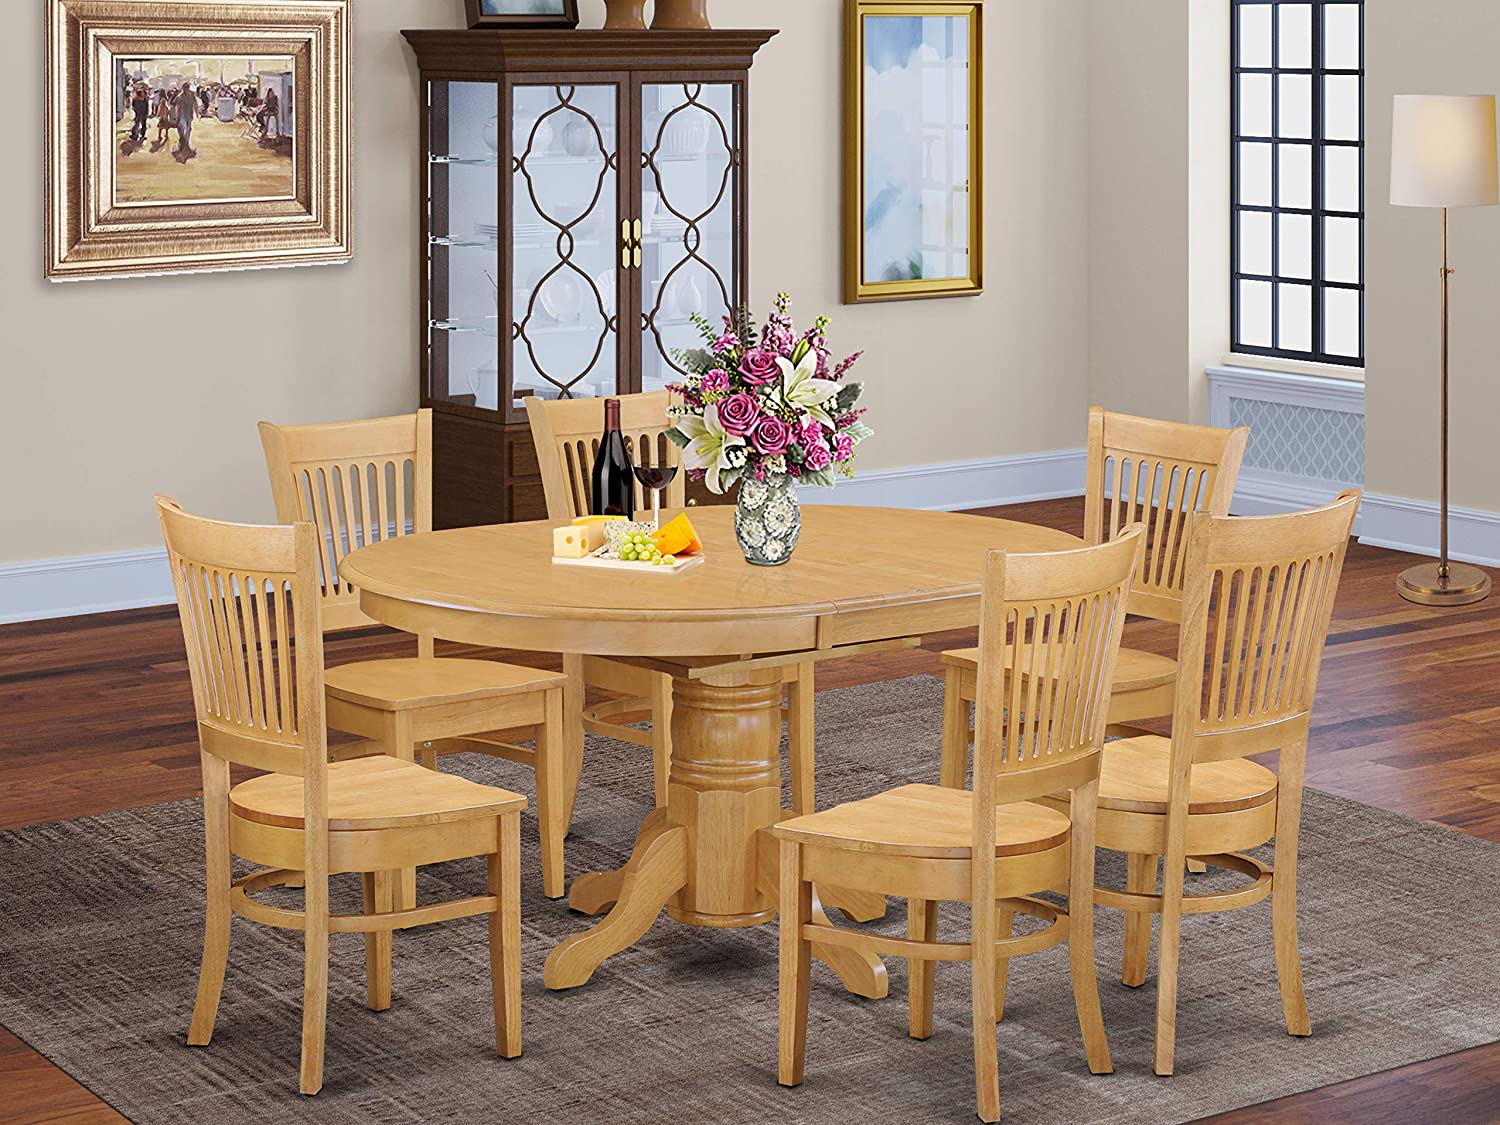 East West Furniture dining set 9 Great Wooden dining room chairs   A  Beautiful mid century dining table  Oak Color Wooden Seat Oak Butterfly  Leaf ...